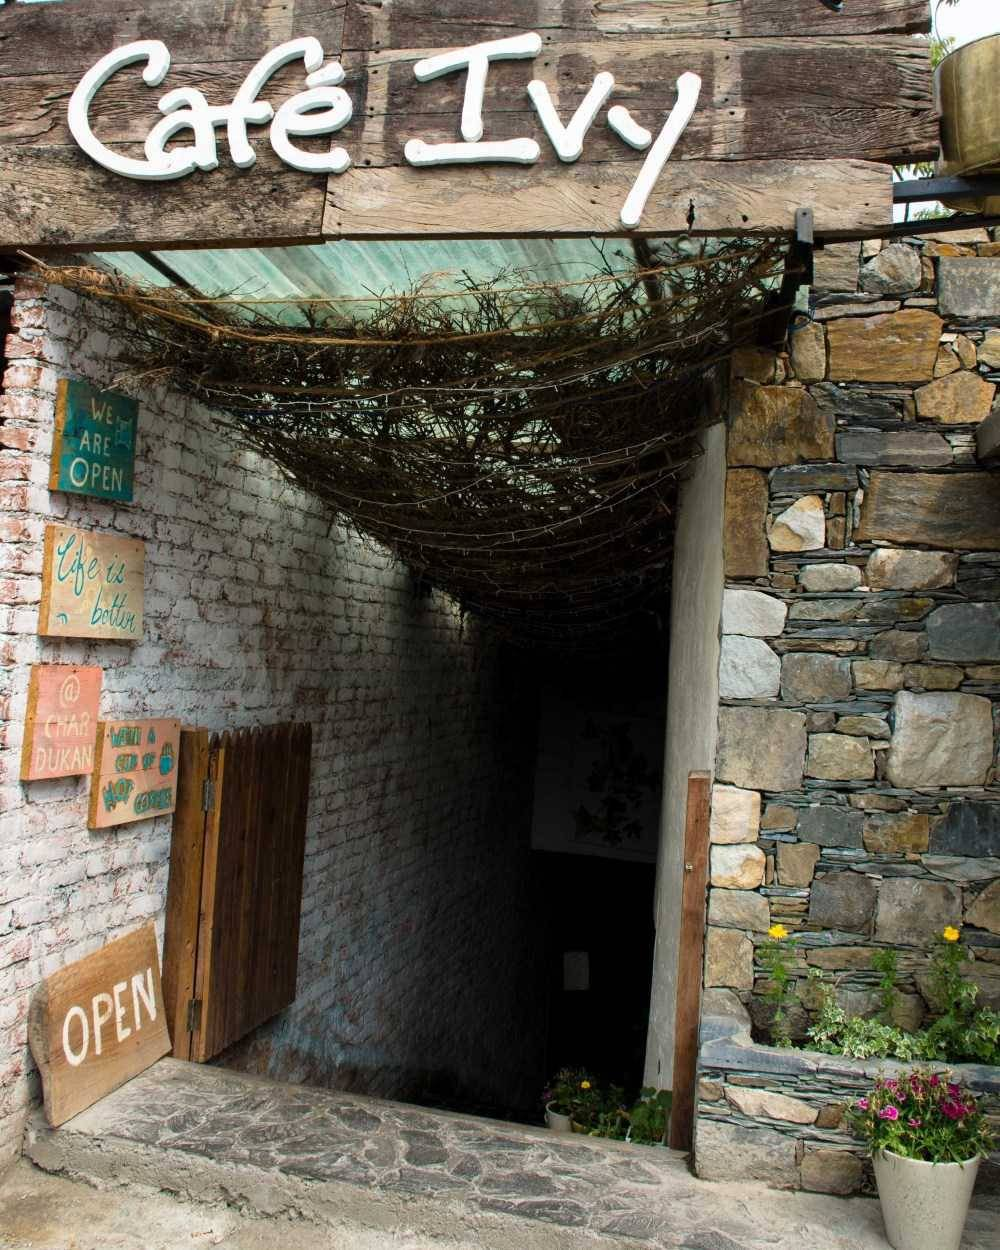 Cafe Ivy in Mussoorie